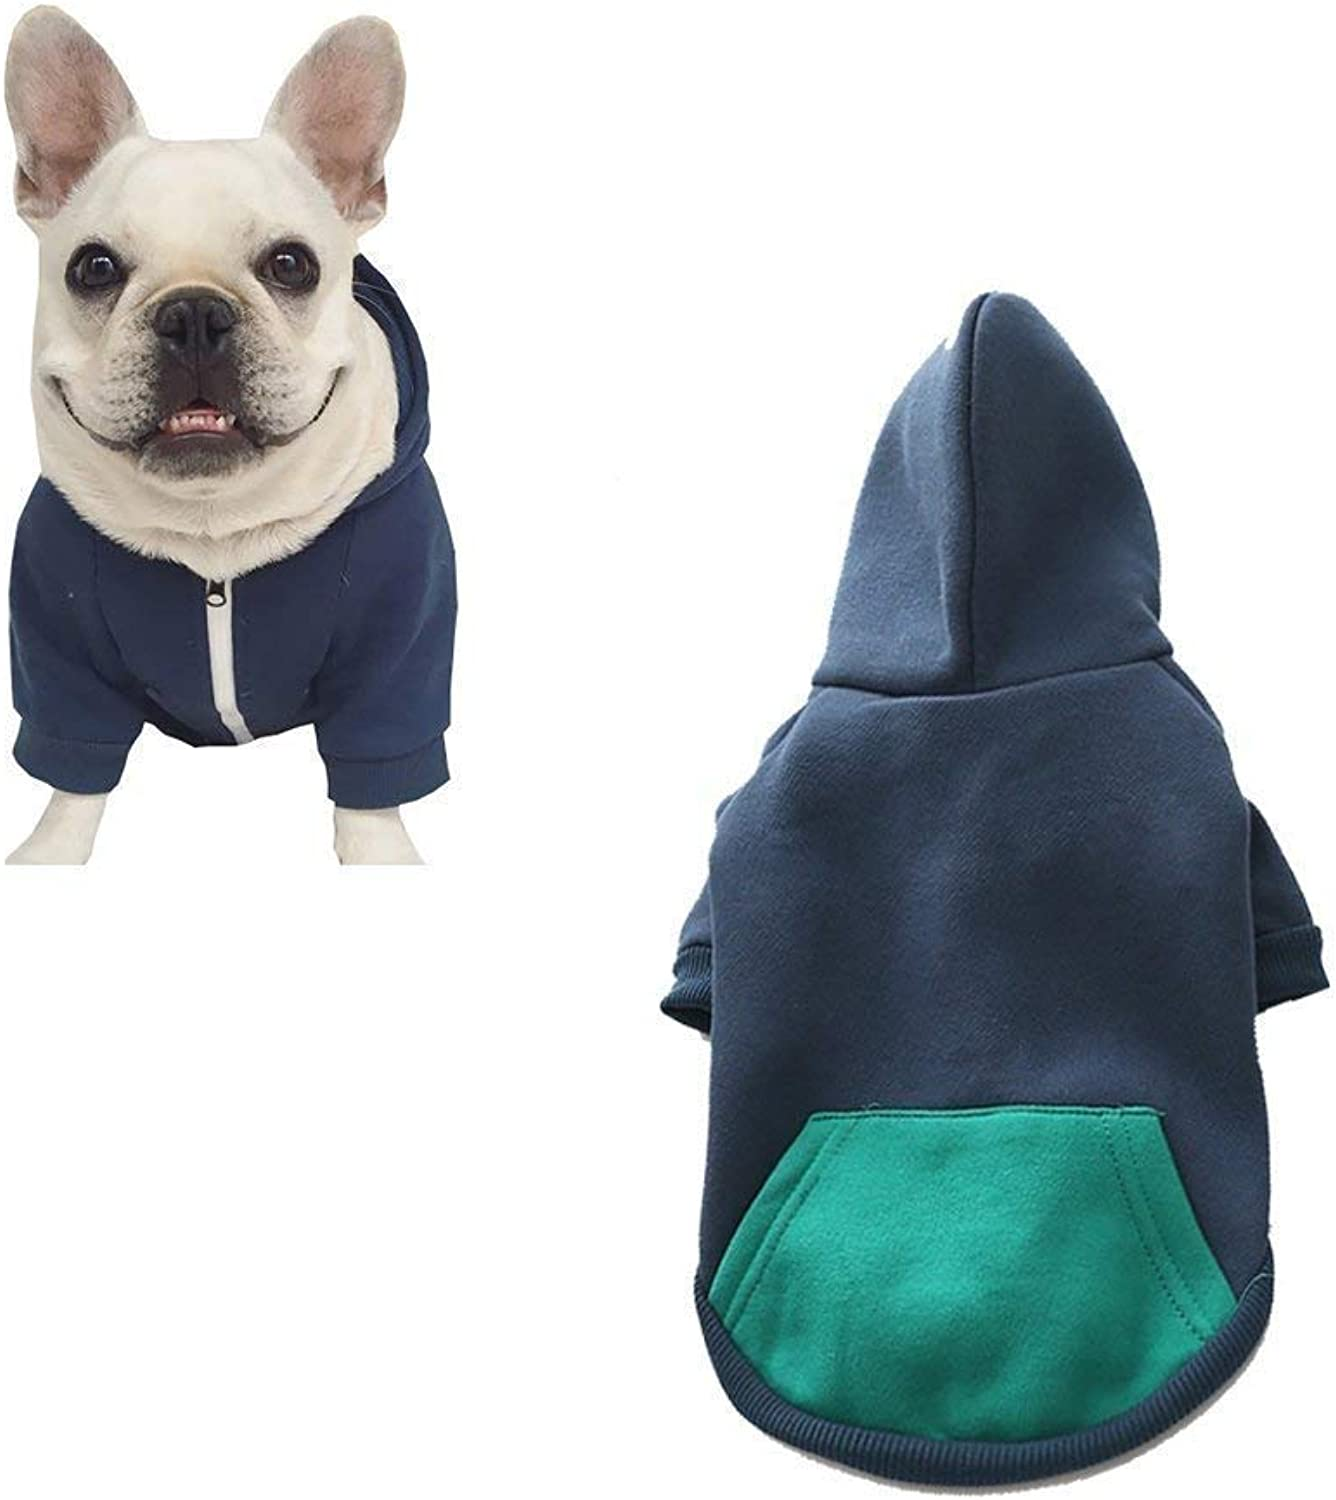 Meigold Pet Clothes Dog Cat Zipper Hoodies Warm Soft Cotton Pet Winter Sweatshirt for French Bulldog Pug (S, Dark bluee)